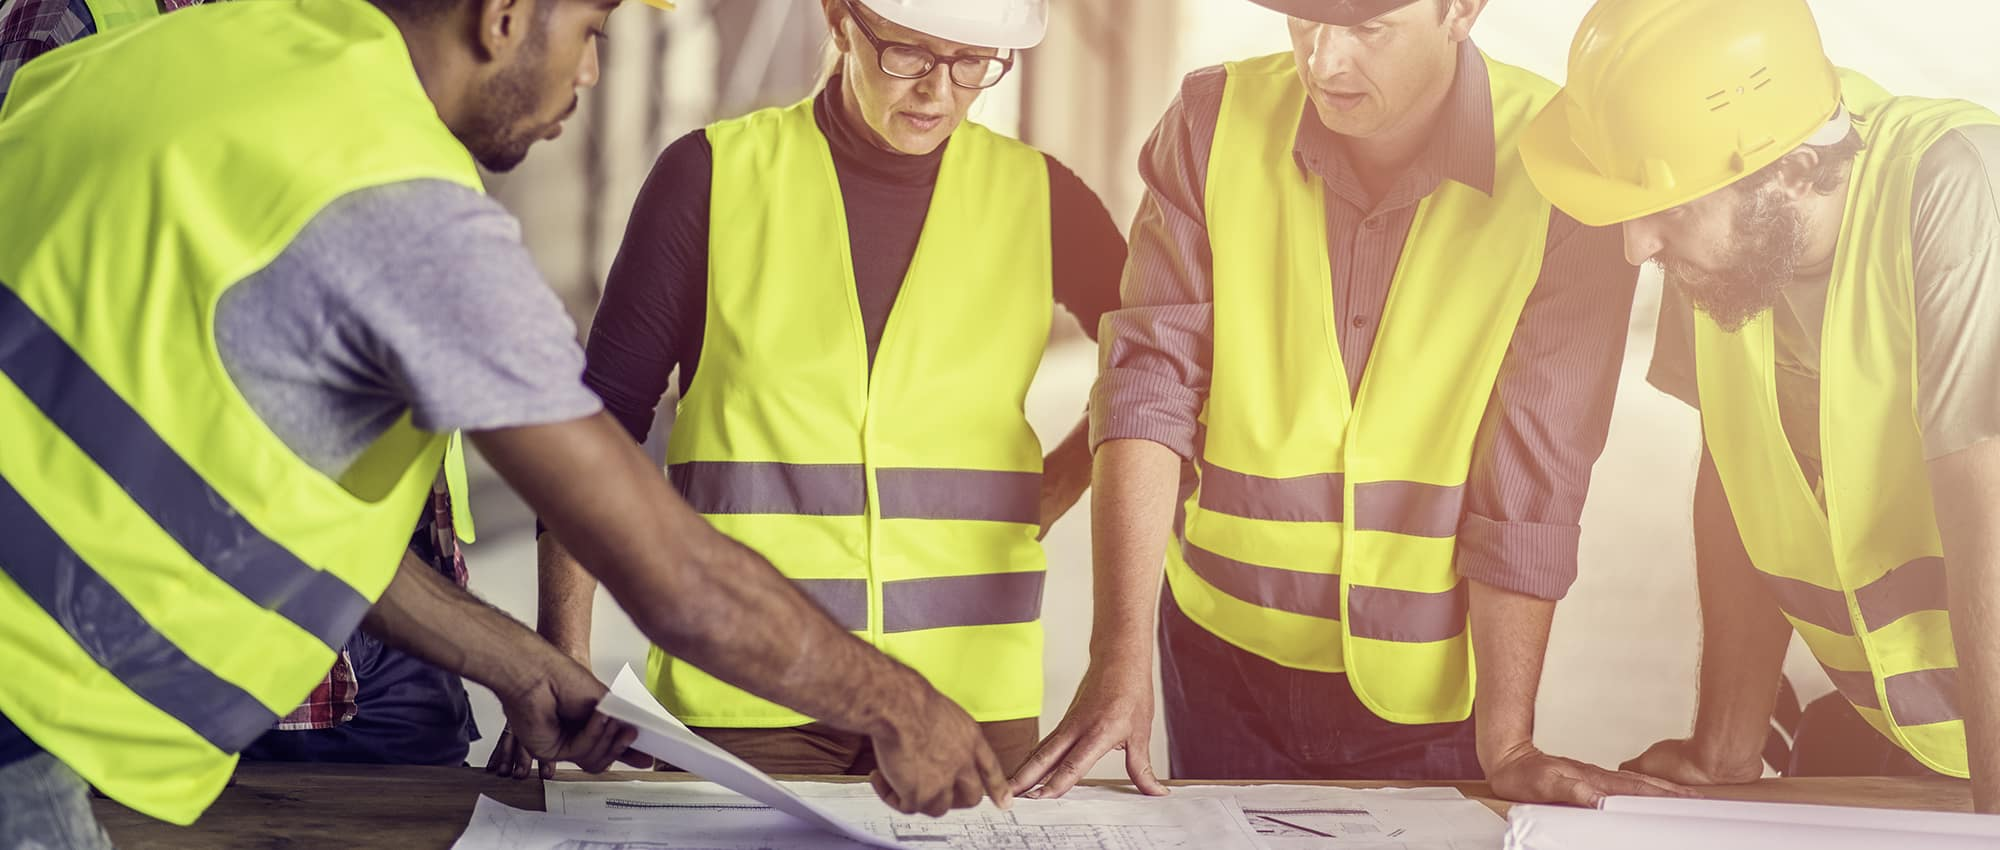 Cost to hire a project manager for an office build-out or